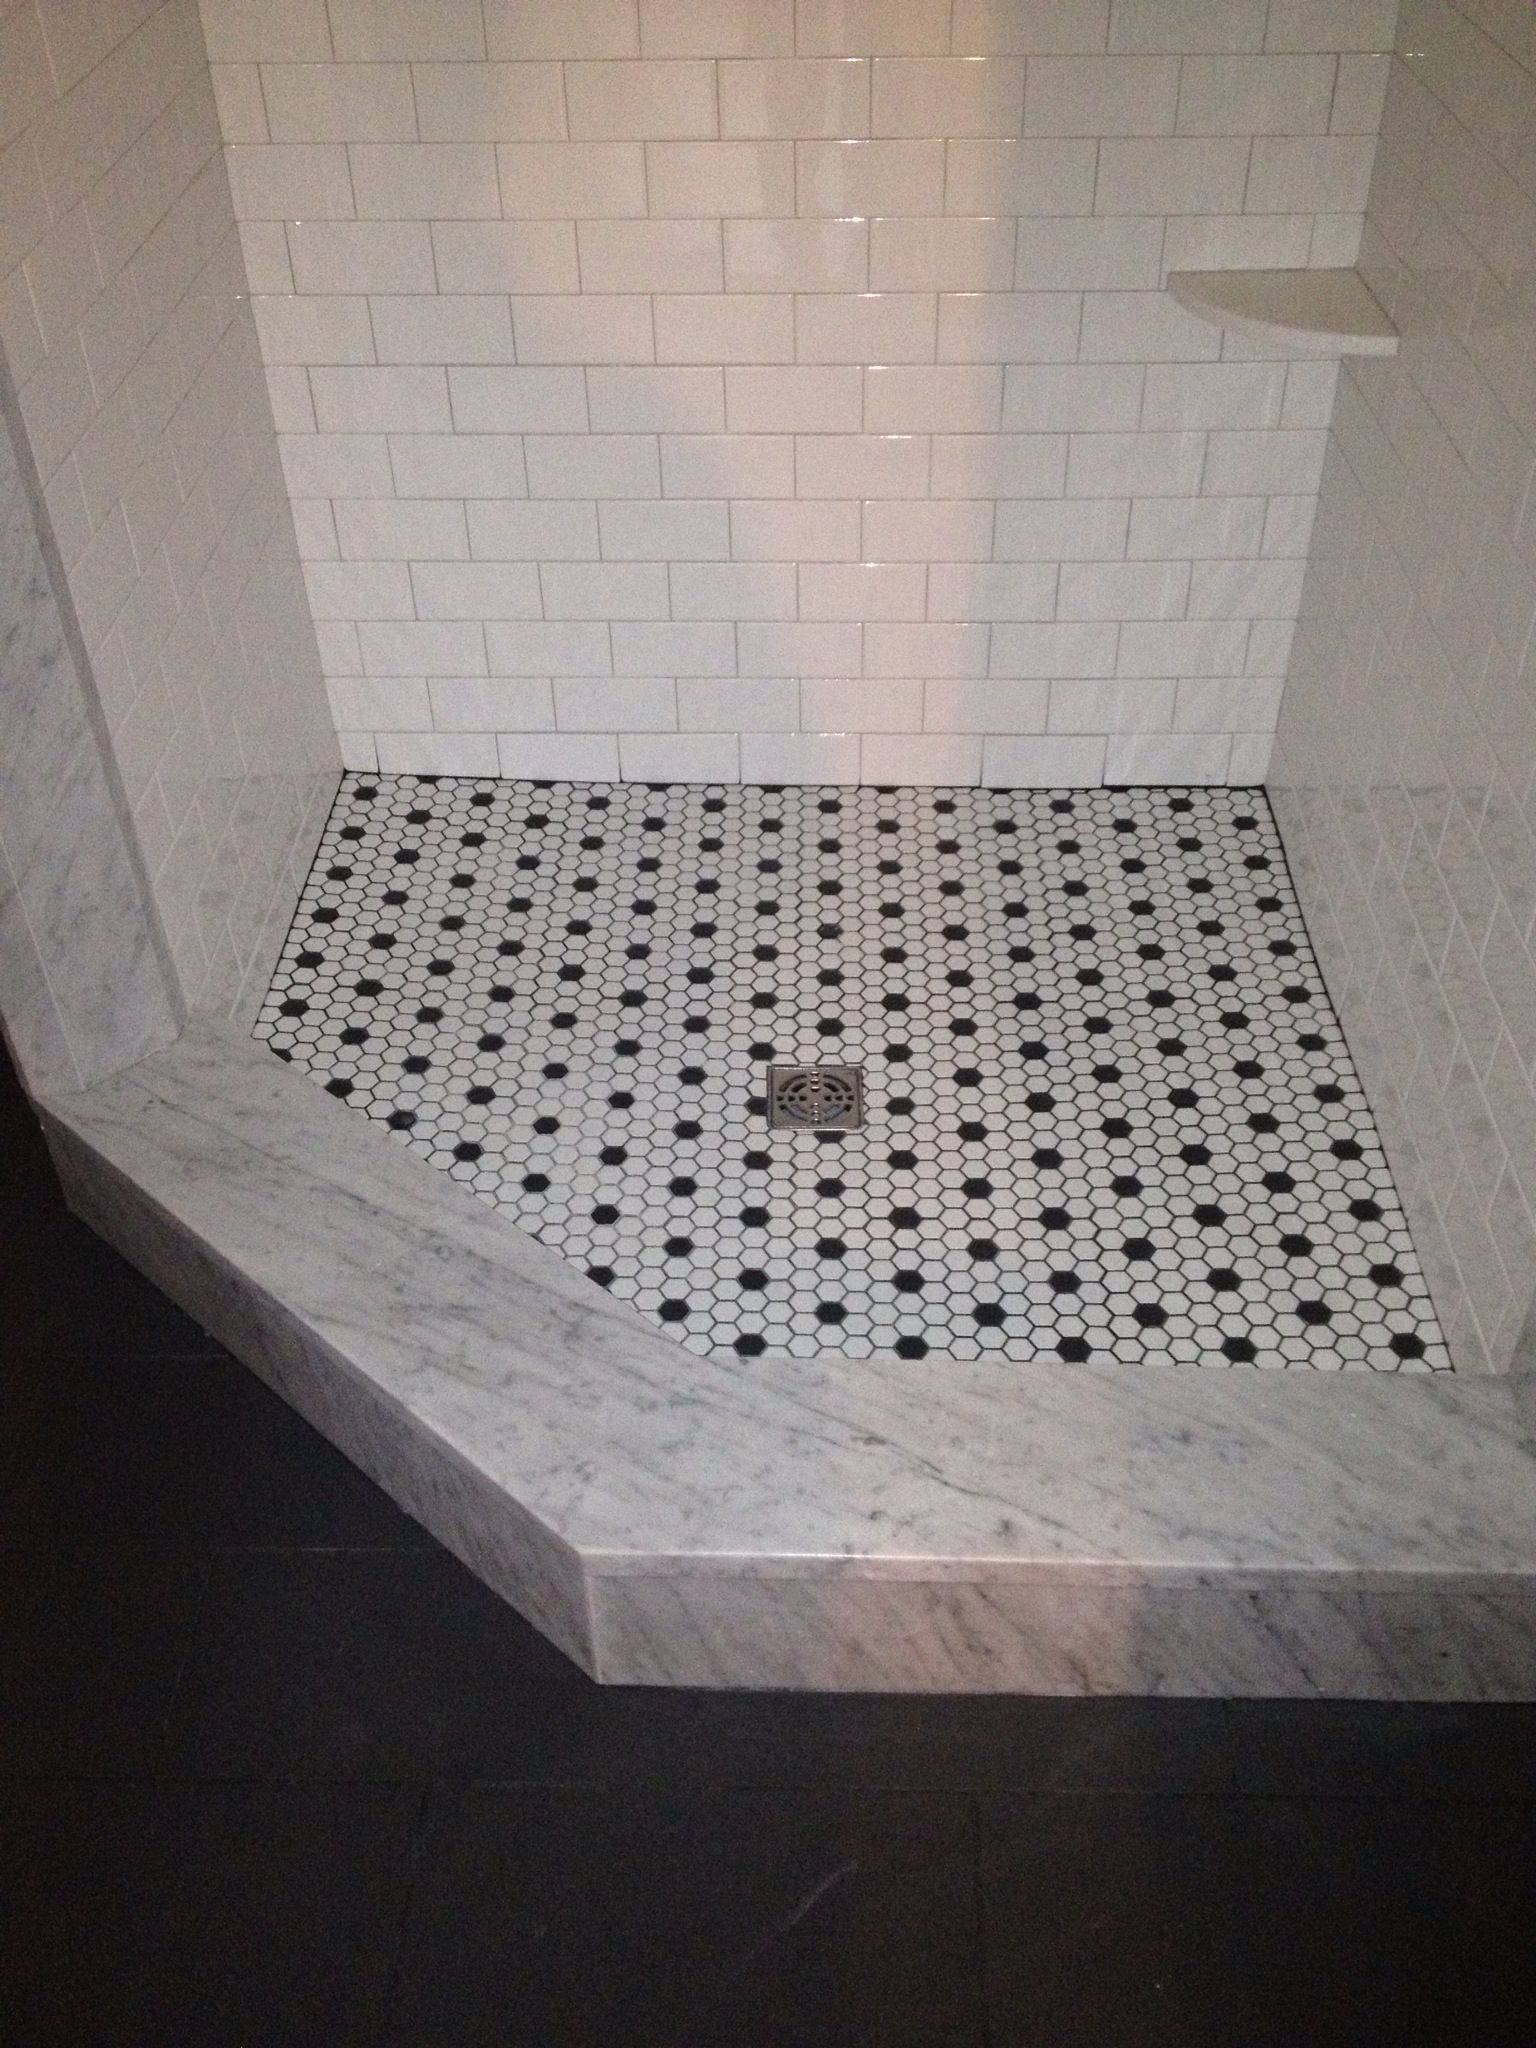 Tiling Bathroom Door Threshold small bathroom takes on a classic white hex tile floor with